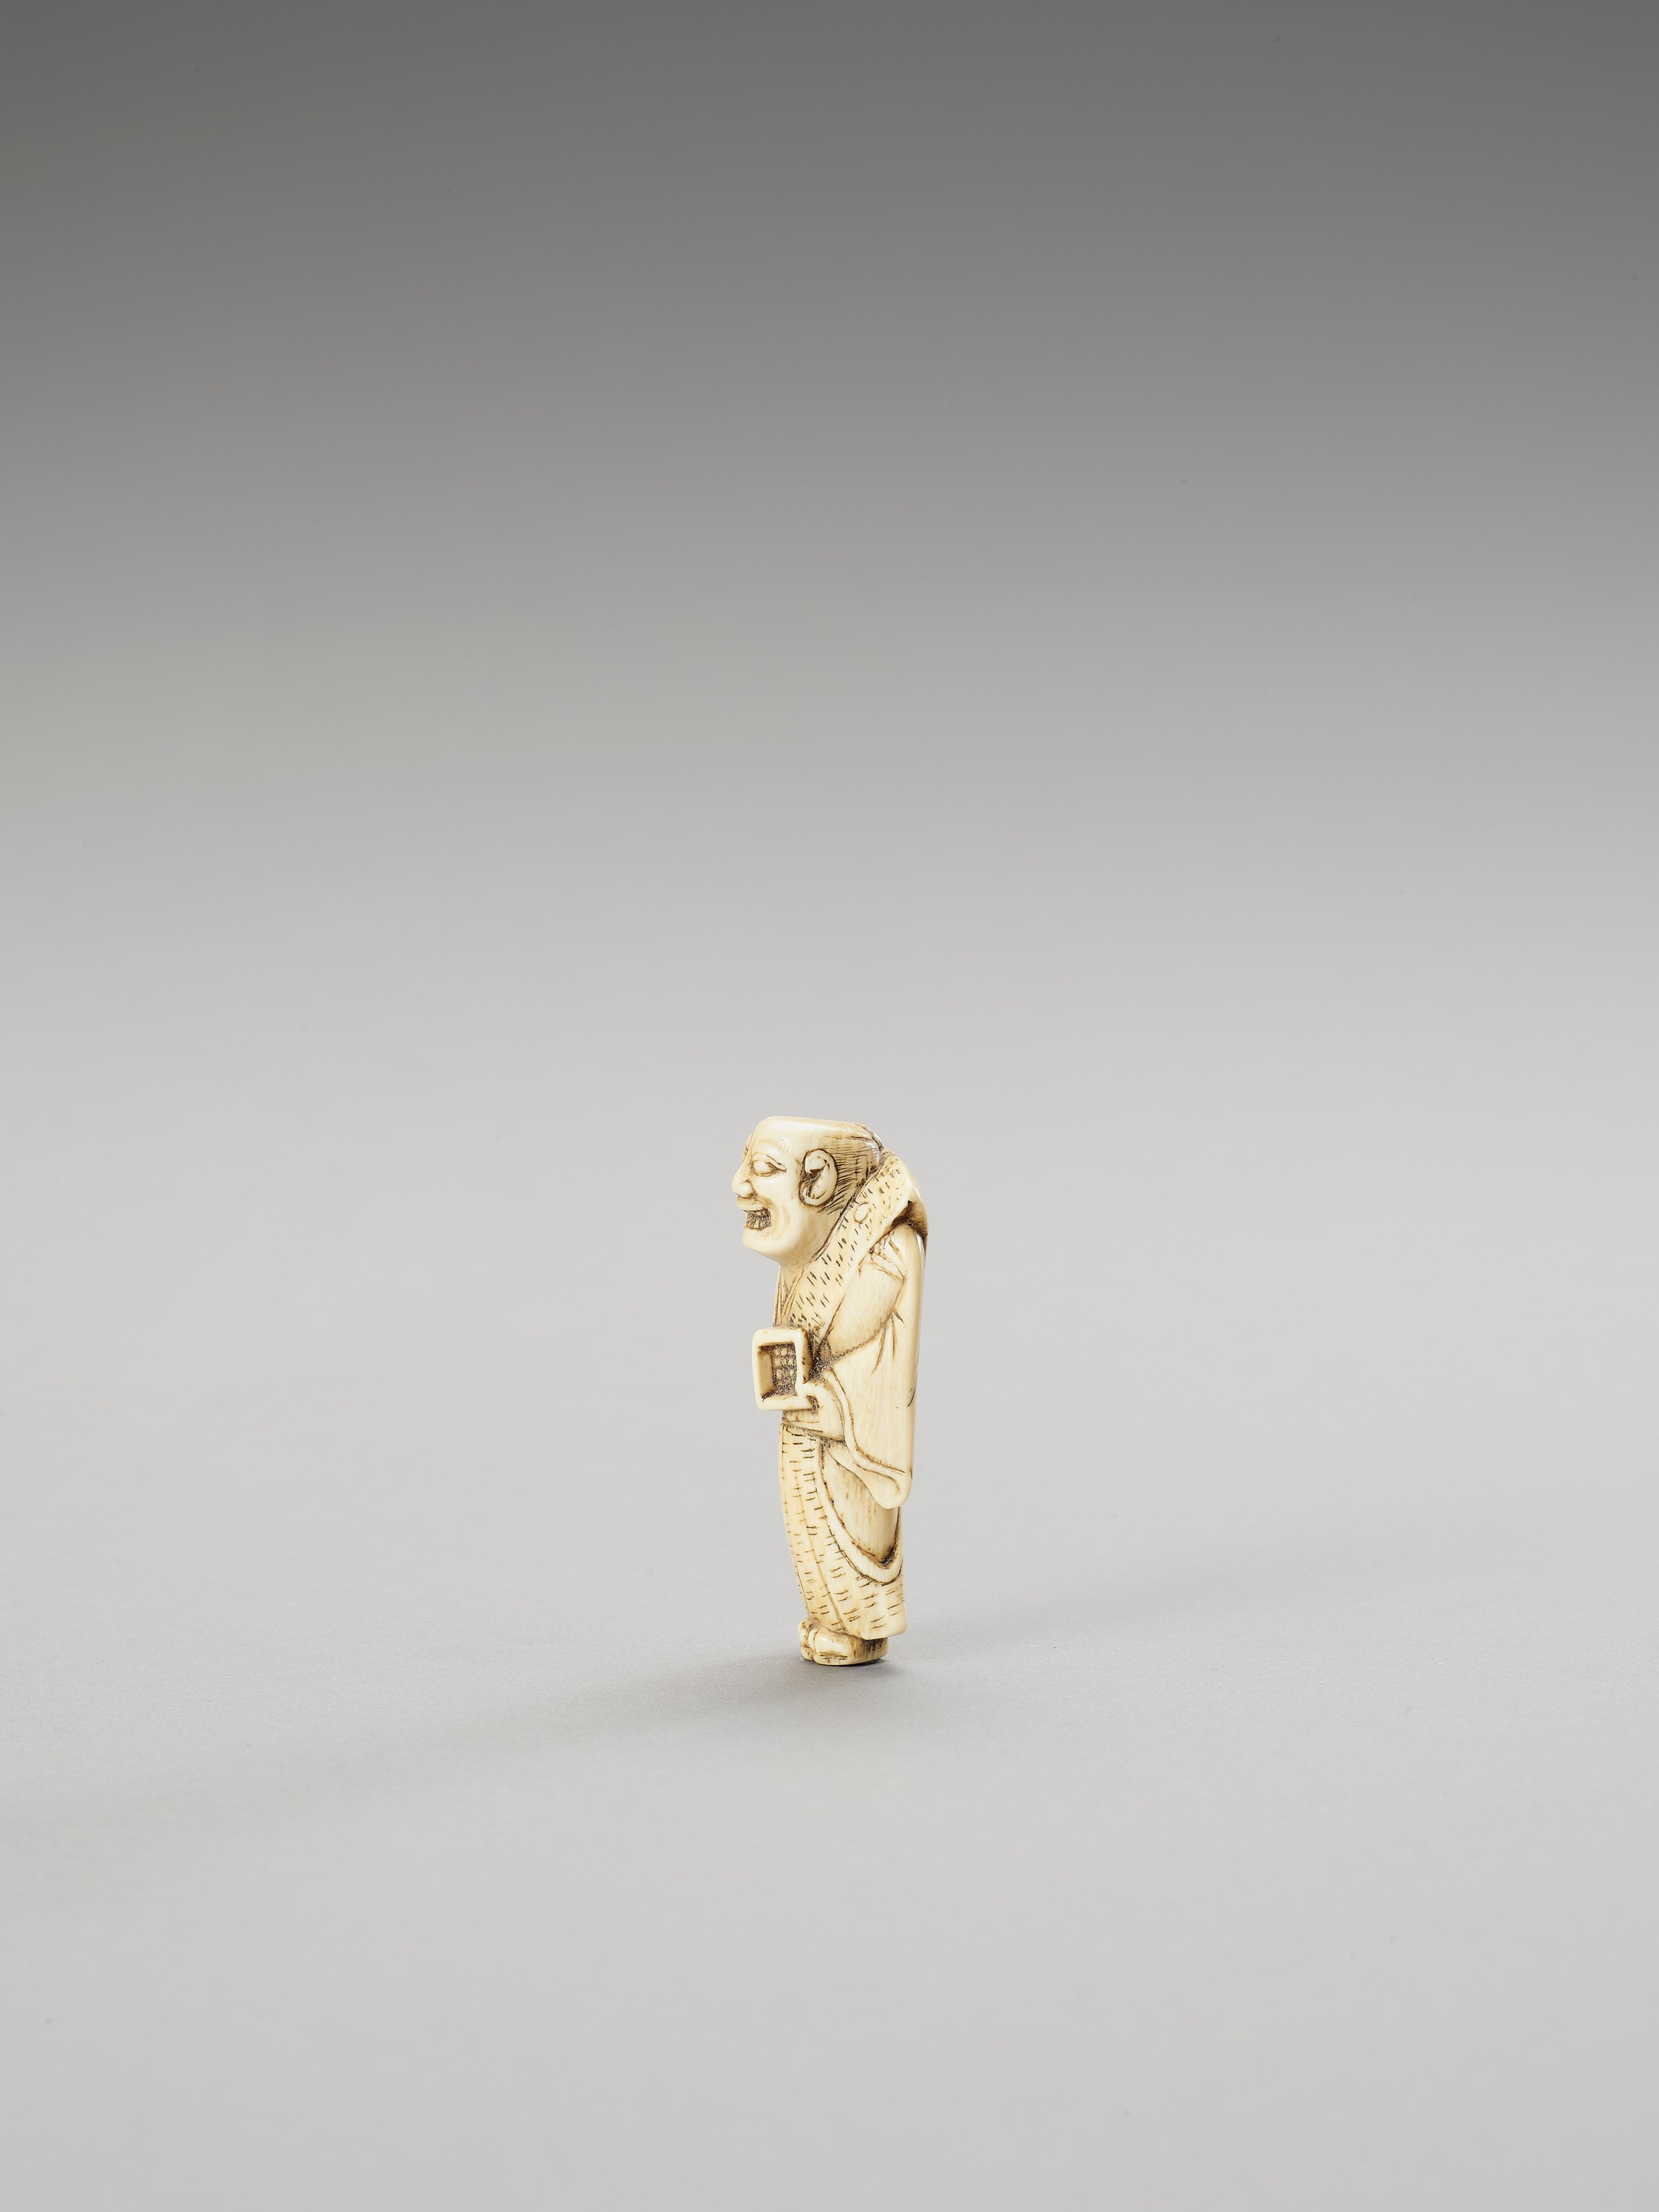 AN IVORY NETSUKE OF A MAN THROWING ROASTED BEANS - Image 2 of 3